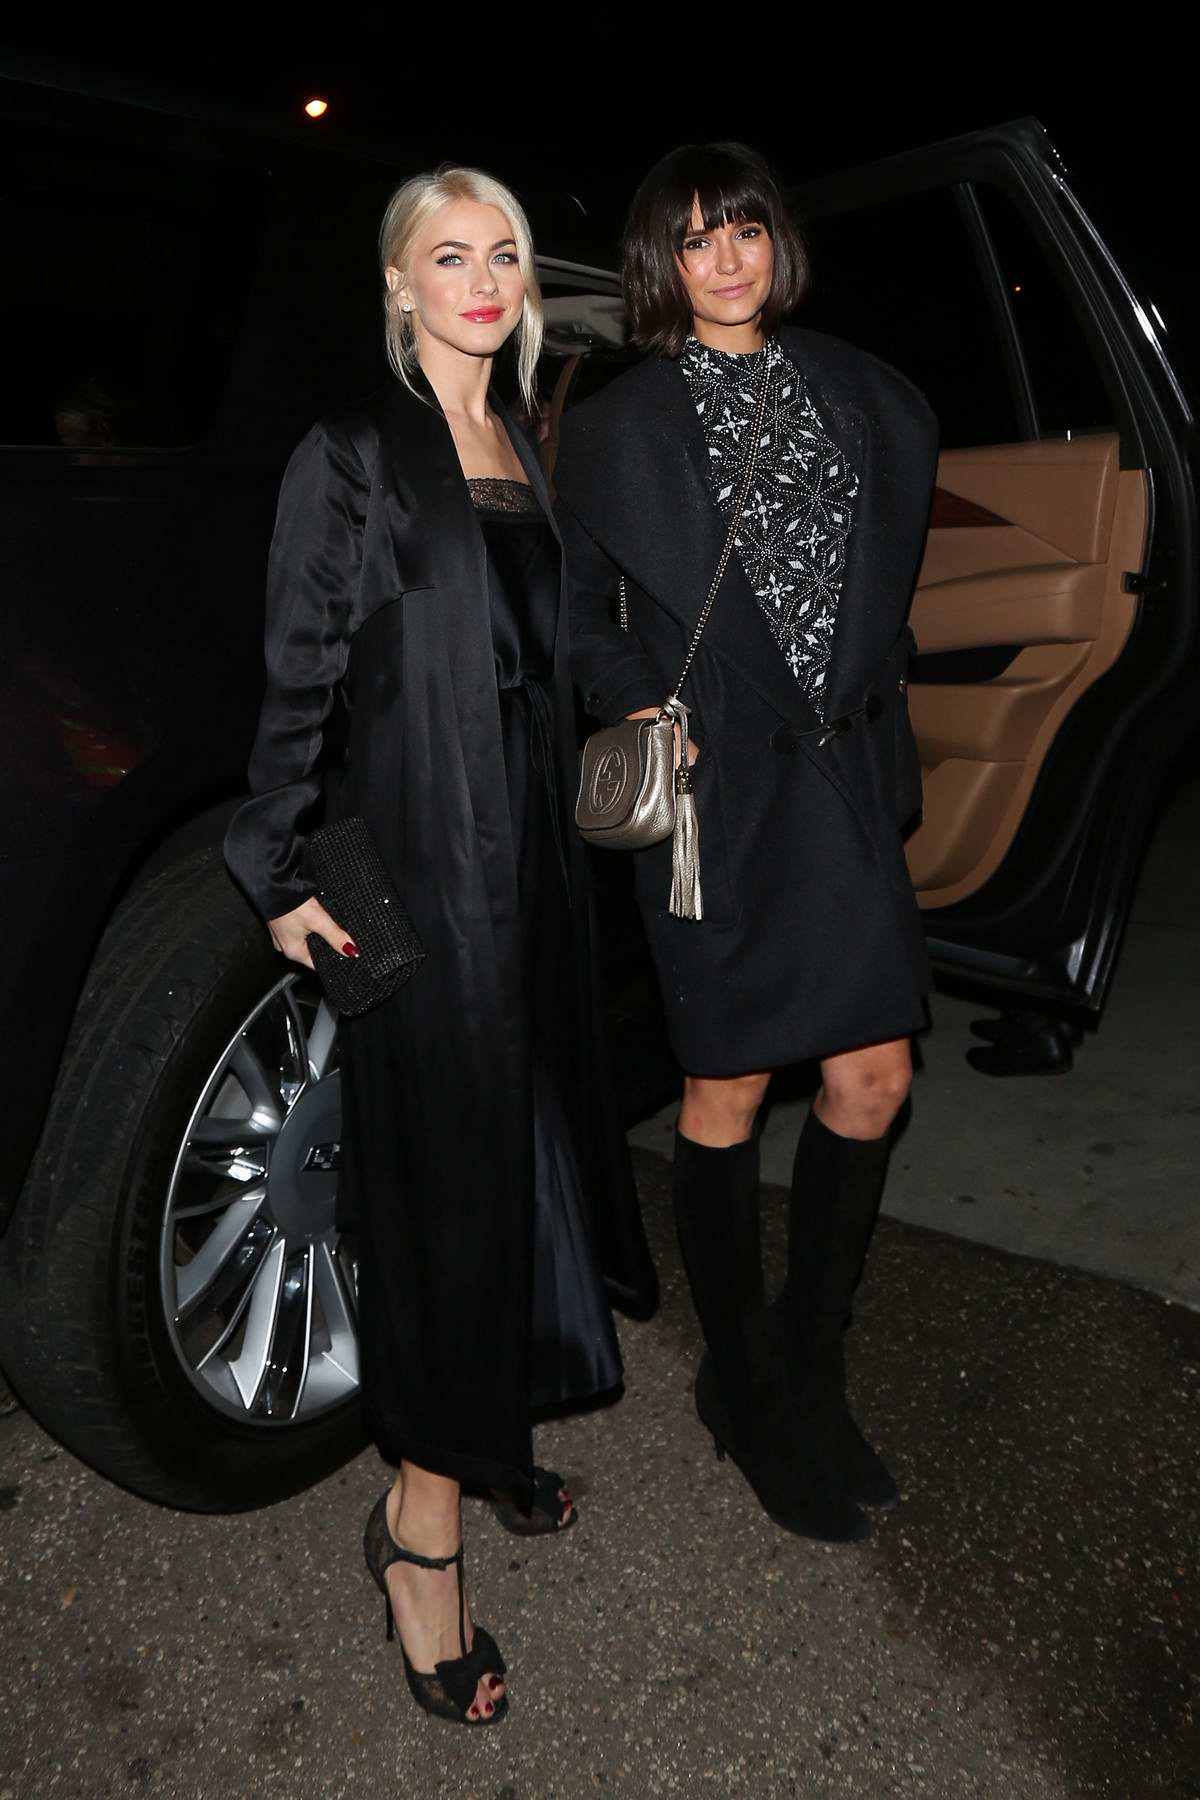 f19bb66dc8 Julianne Hough and Nina Dobrev attend a house party together in Los Angeles